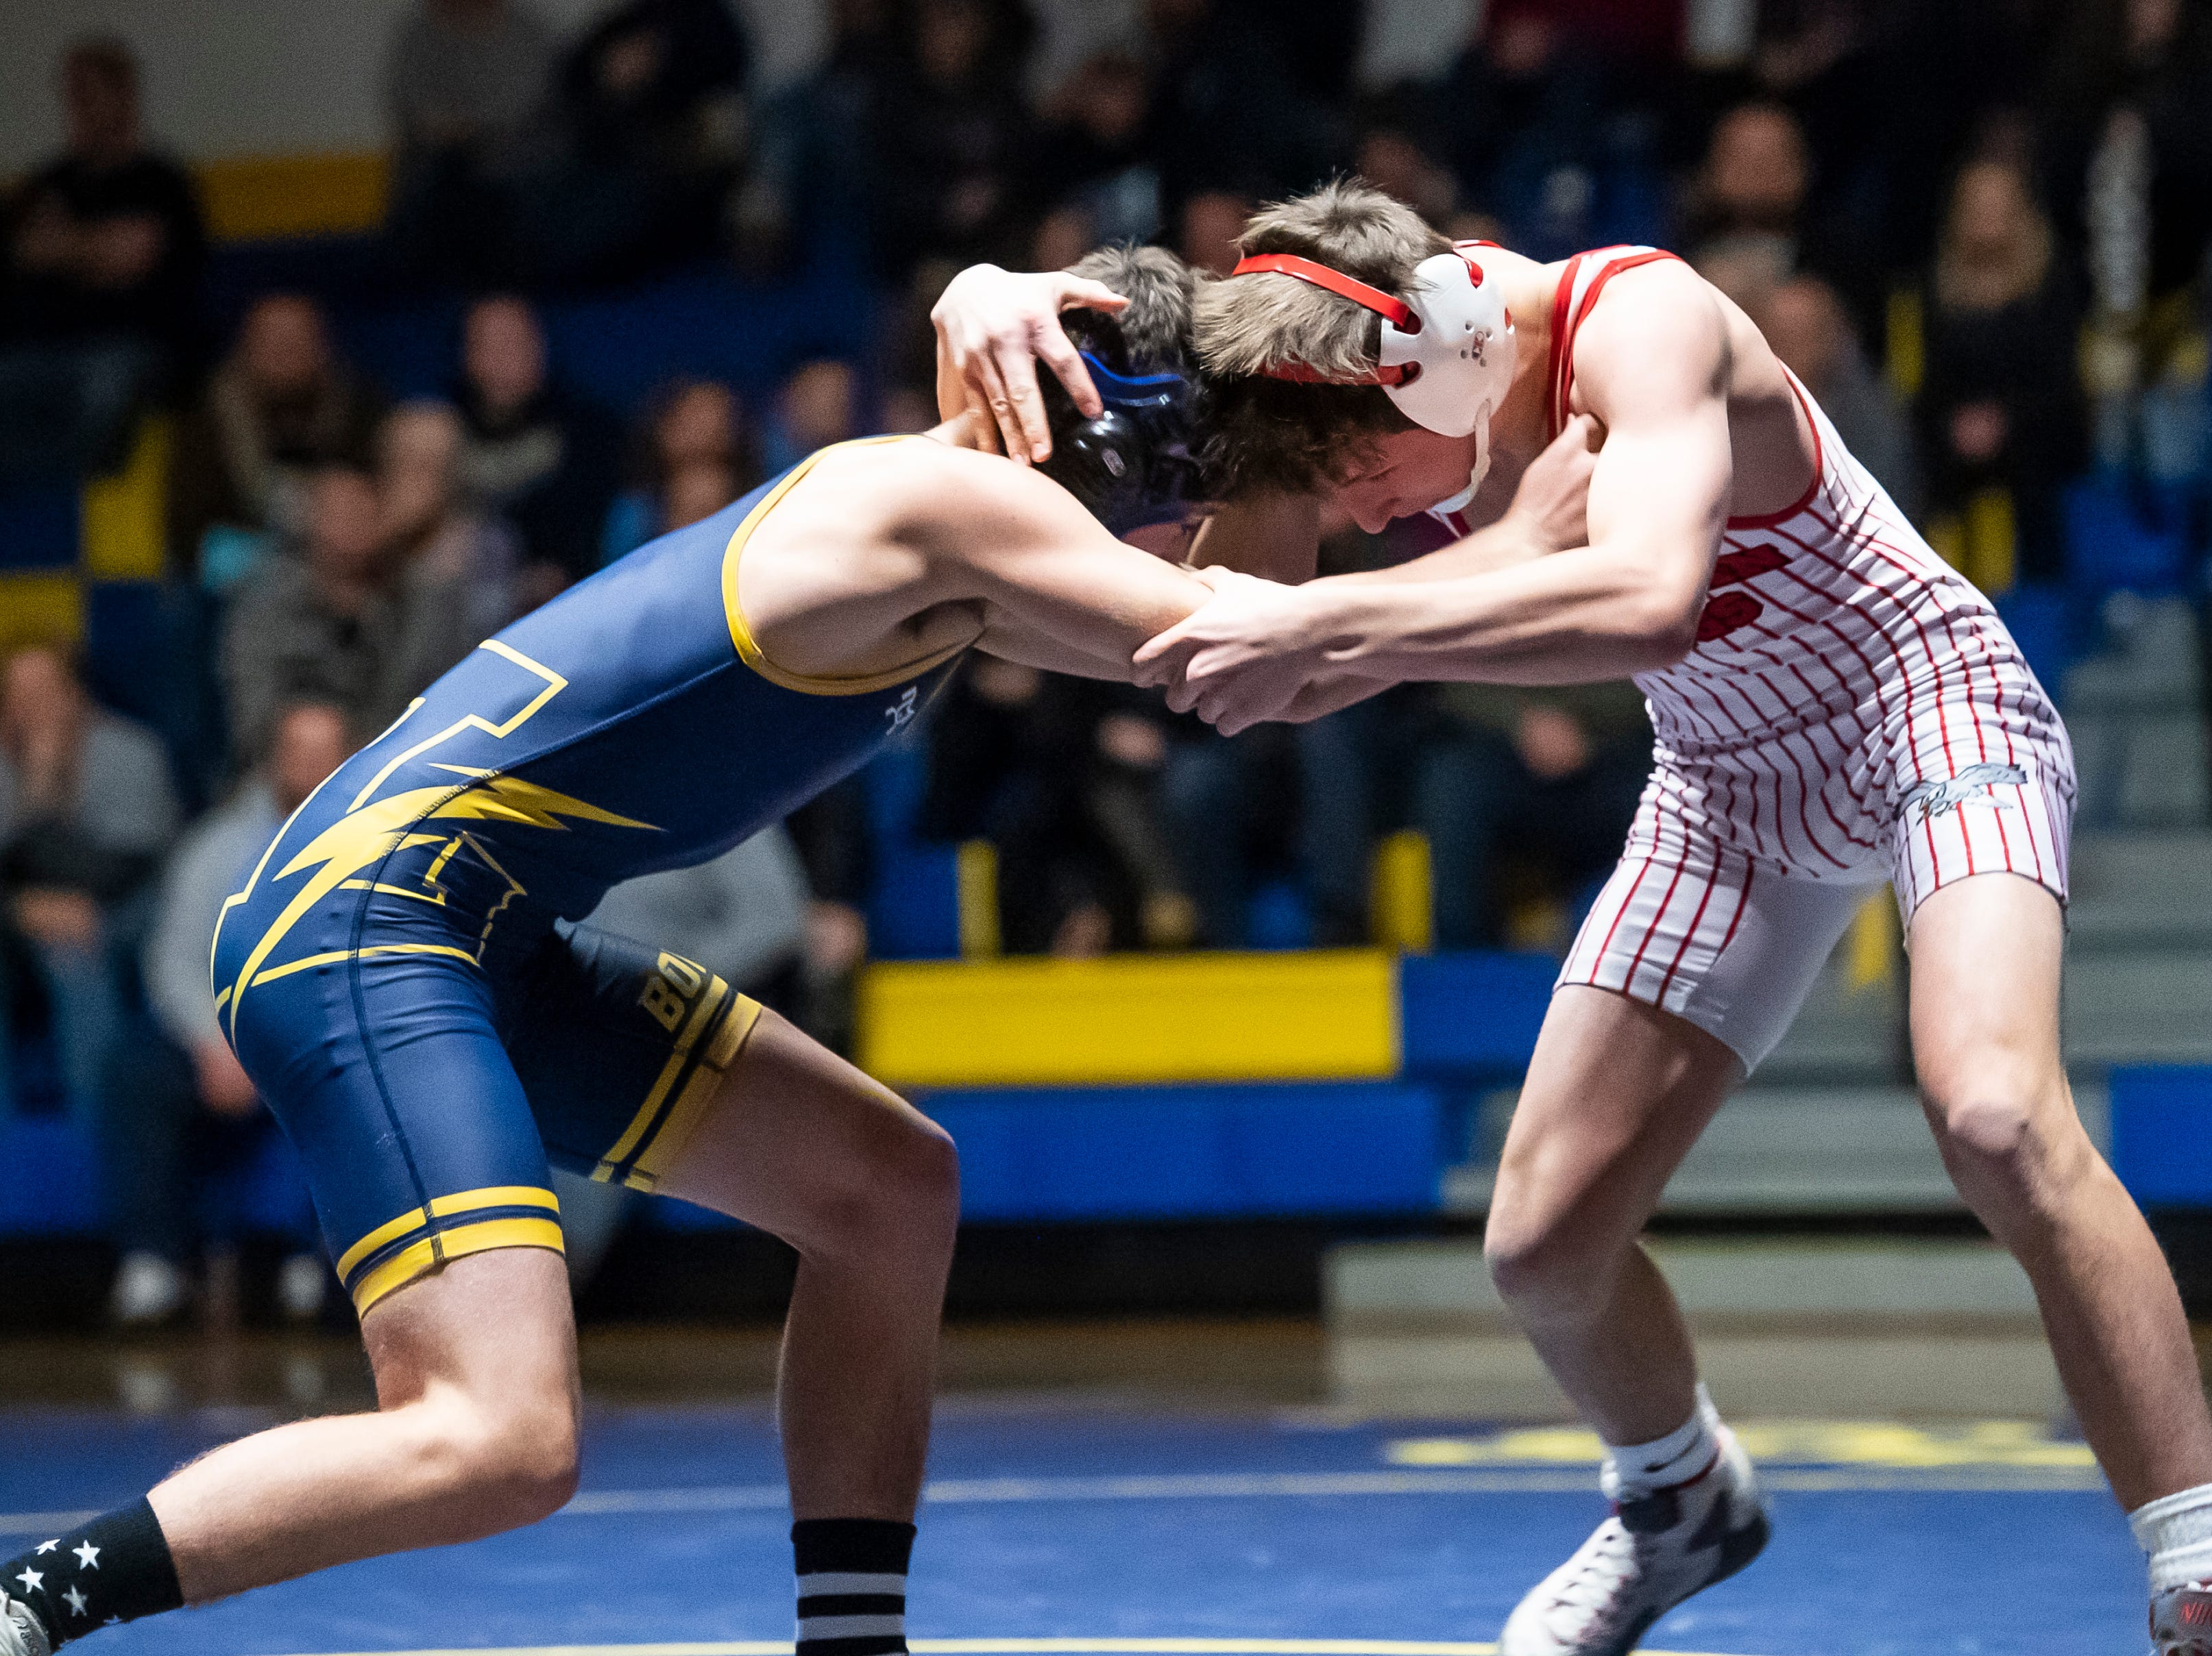 Bermudian Springs' Caleb Mantz (right) wrestles Littlestown's Tanner Trousdale in the 126-pound bout on Thursday, January 24, 2019. Mantz won by fall as the Eagles captured the YAIAA Division 3 title with a 62-12 win.